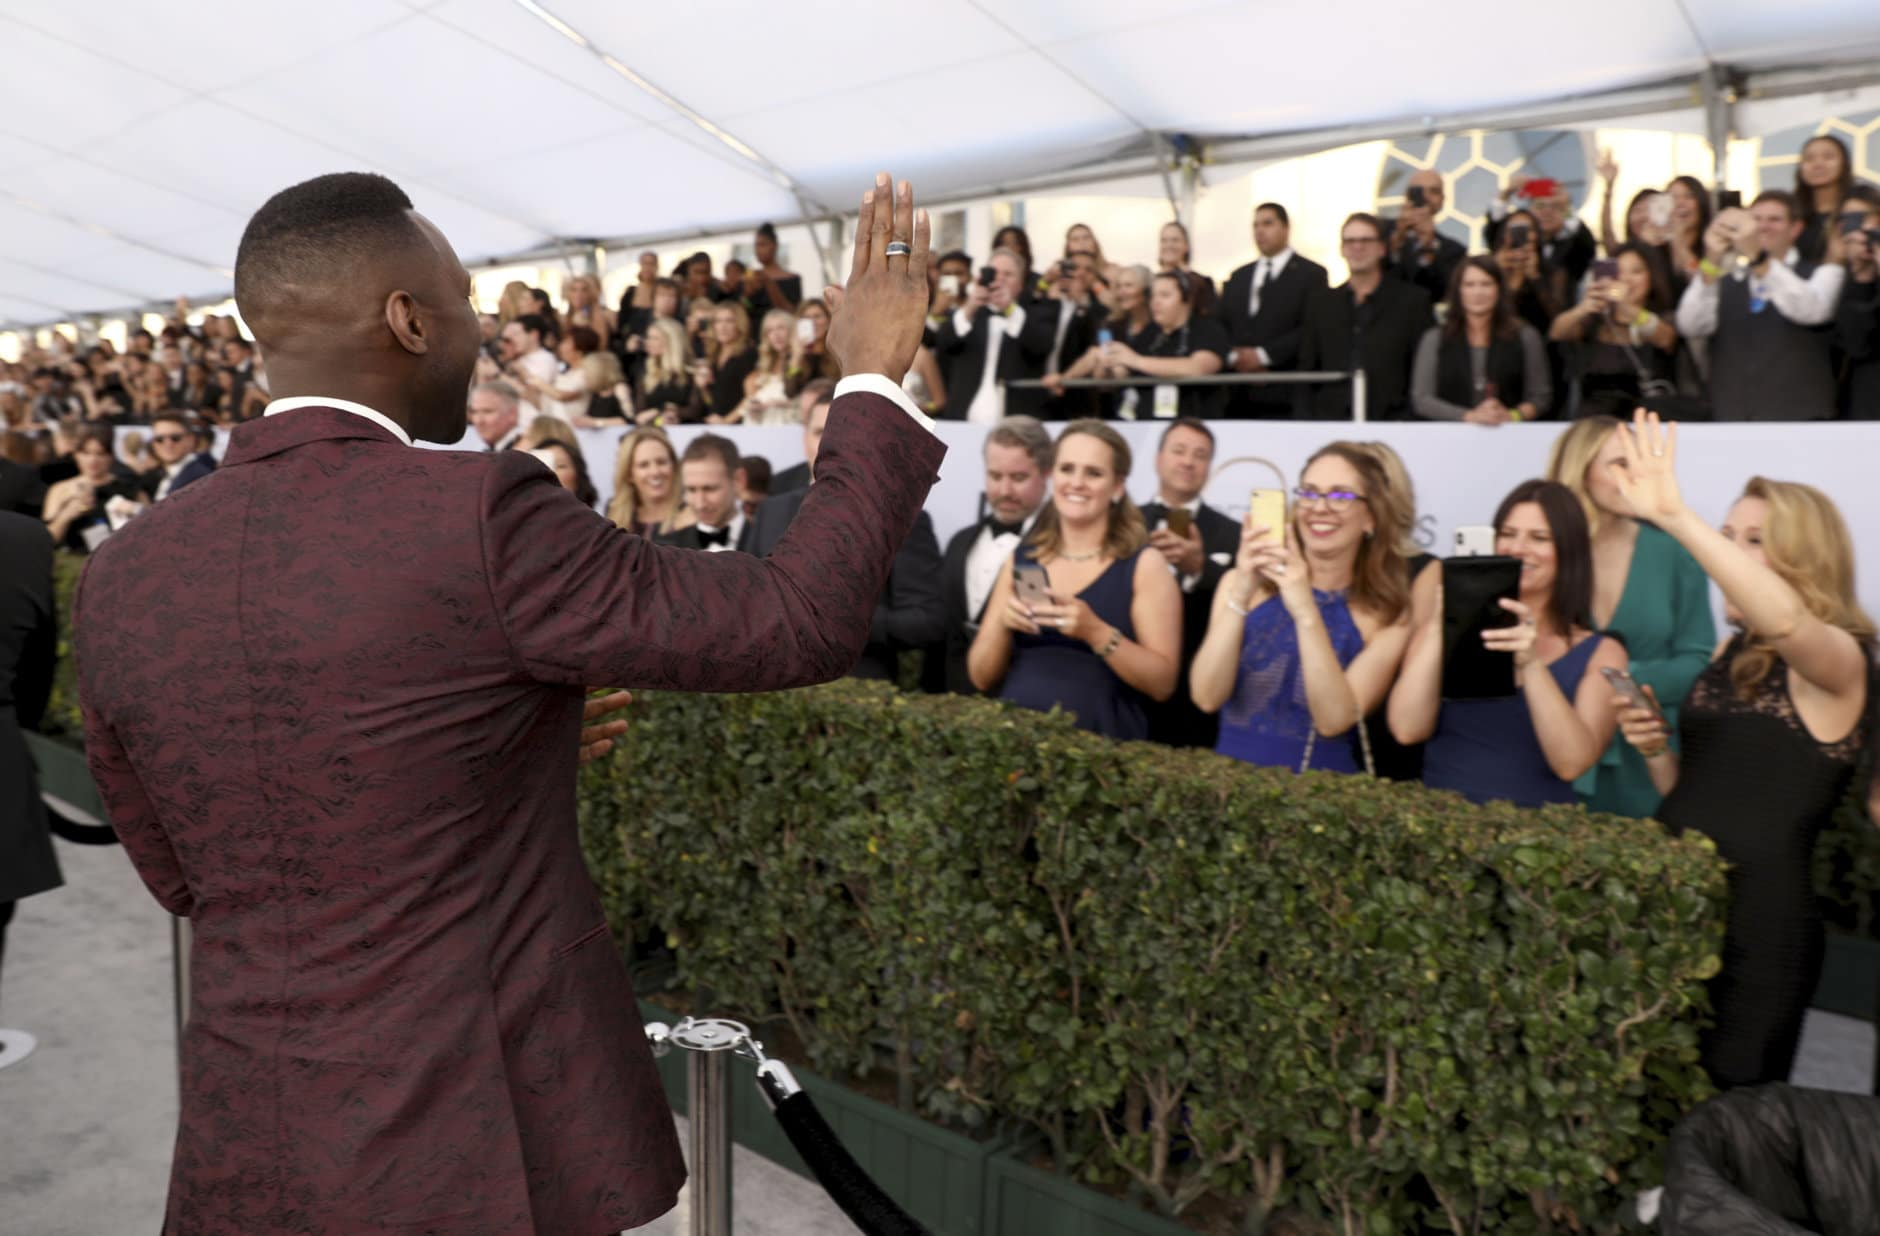 Mahershala Ali waves to fans at the 25th annual Screen Actors Guild Awards at the Shrine Auditorium & Expo Hall on Sunday, Jan. 27, 2019, in Los Angeles. (Photo by Matt Sayles/Invision/AP)